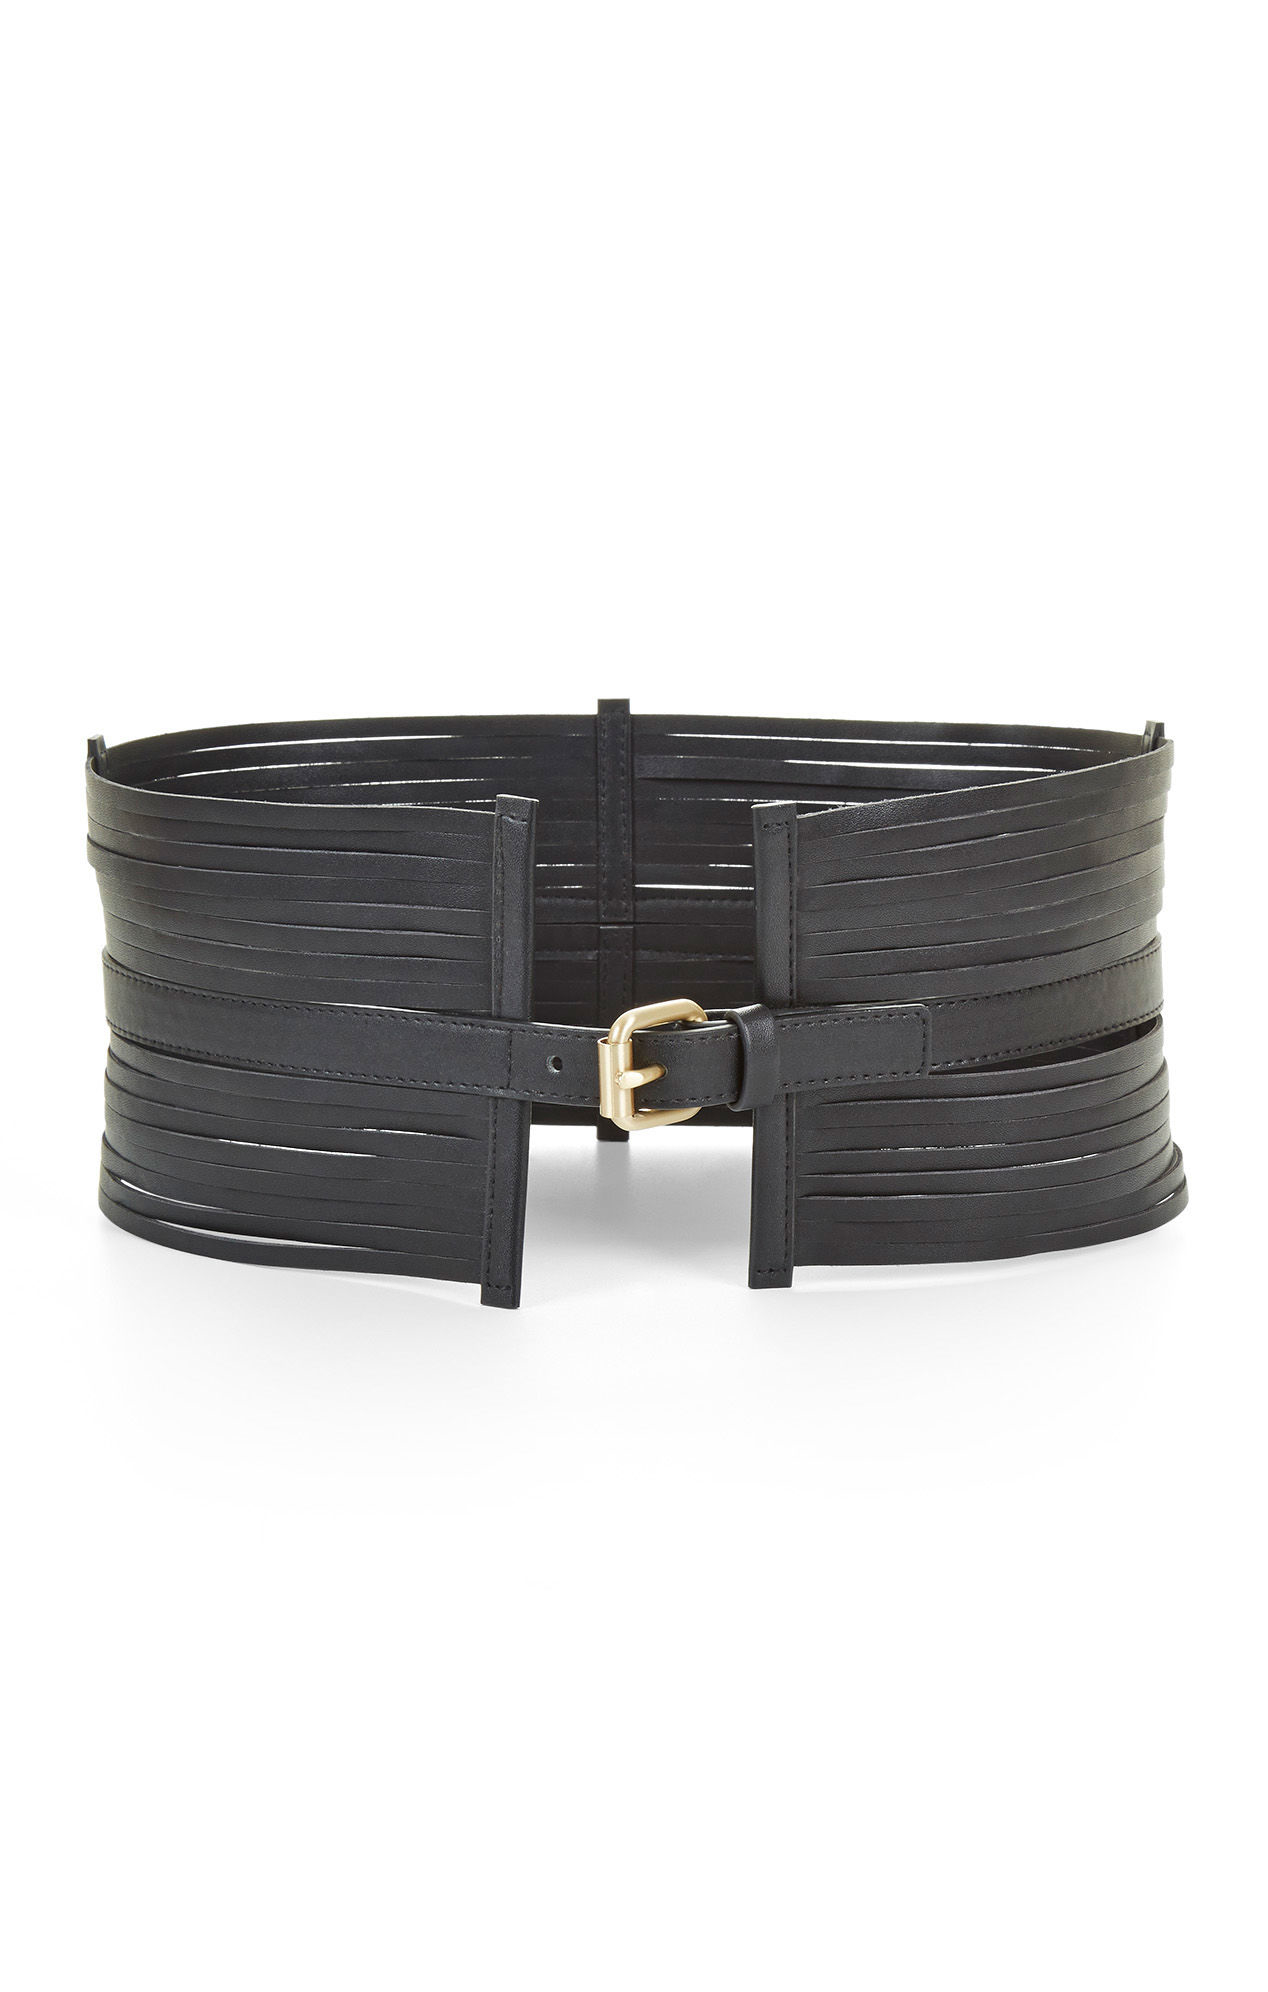 Find black leather waist belt at ShopStyle. Shop the latest collection of black leather waist belt from the most popular stores - all in one place.